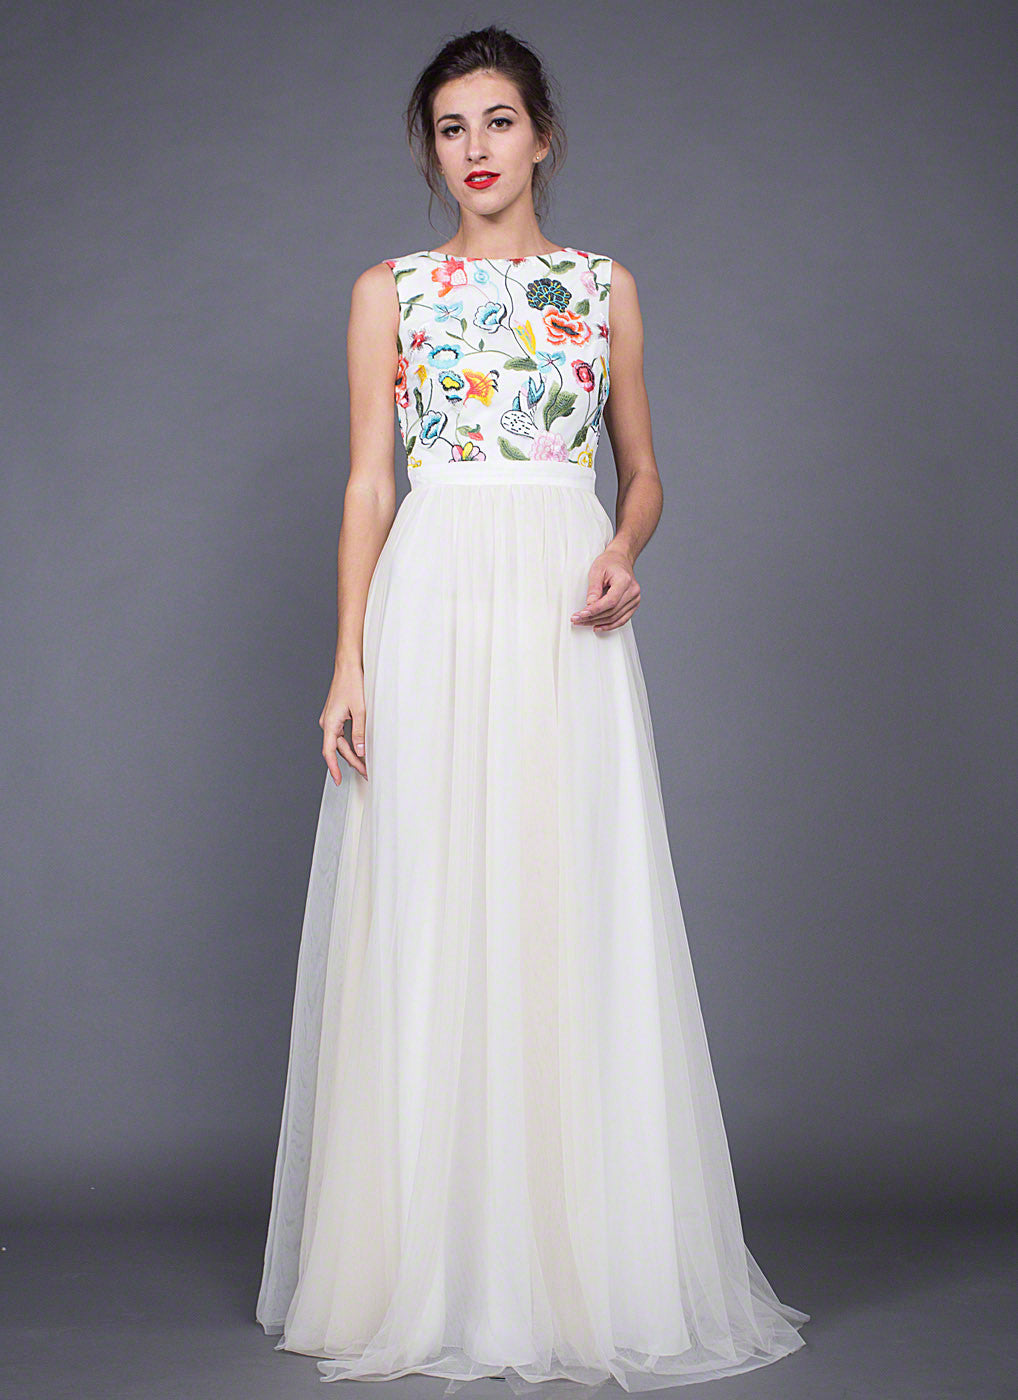 Vintage Style Tulle Evening Gown with Multi-Color Floral Embroidery ...